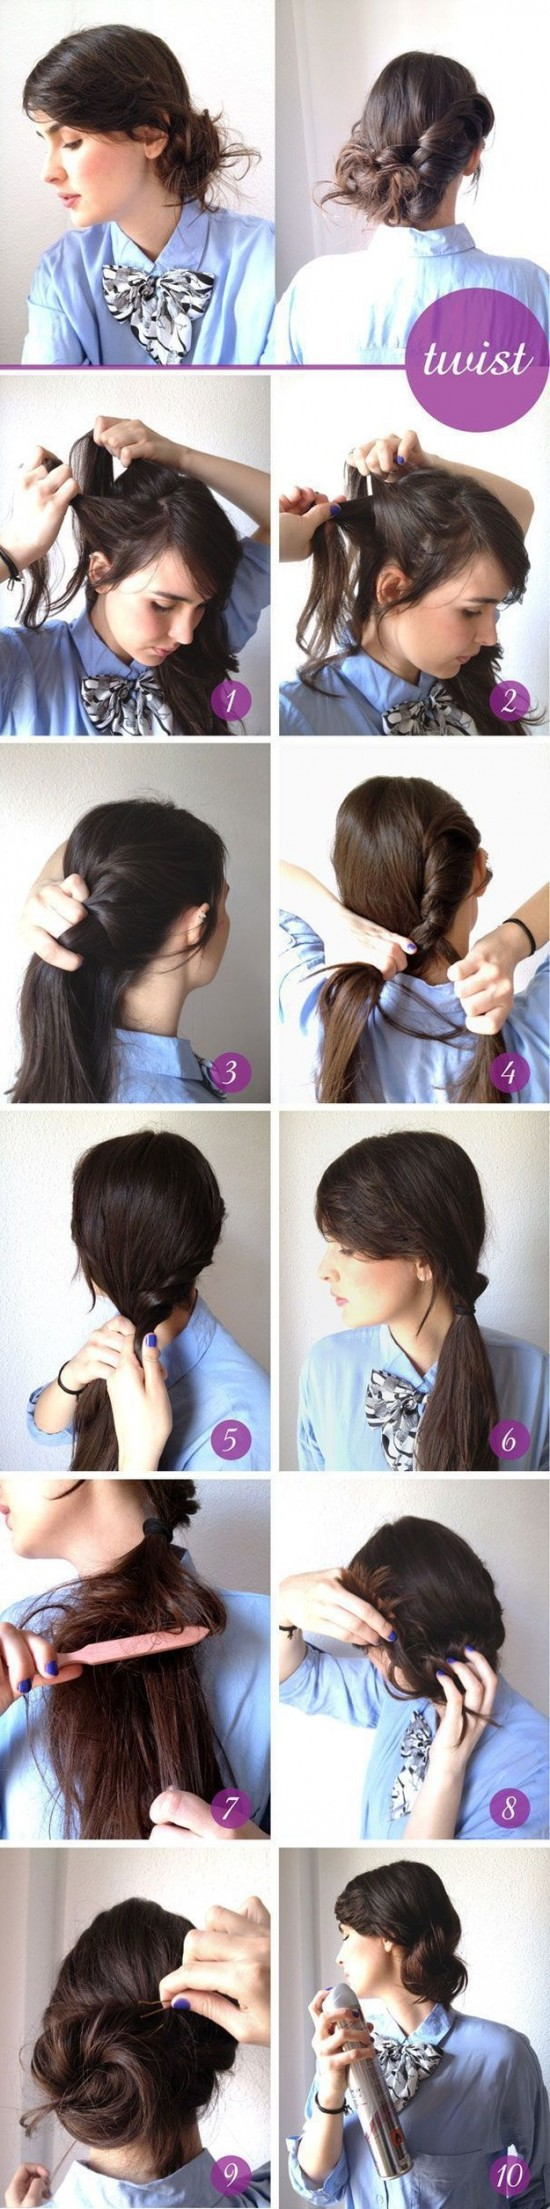 Creative Hairstyles That You Can Easily Do at Home (27 Photos ...